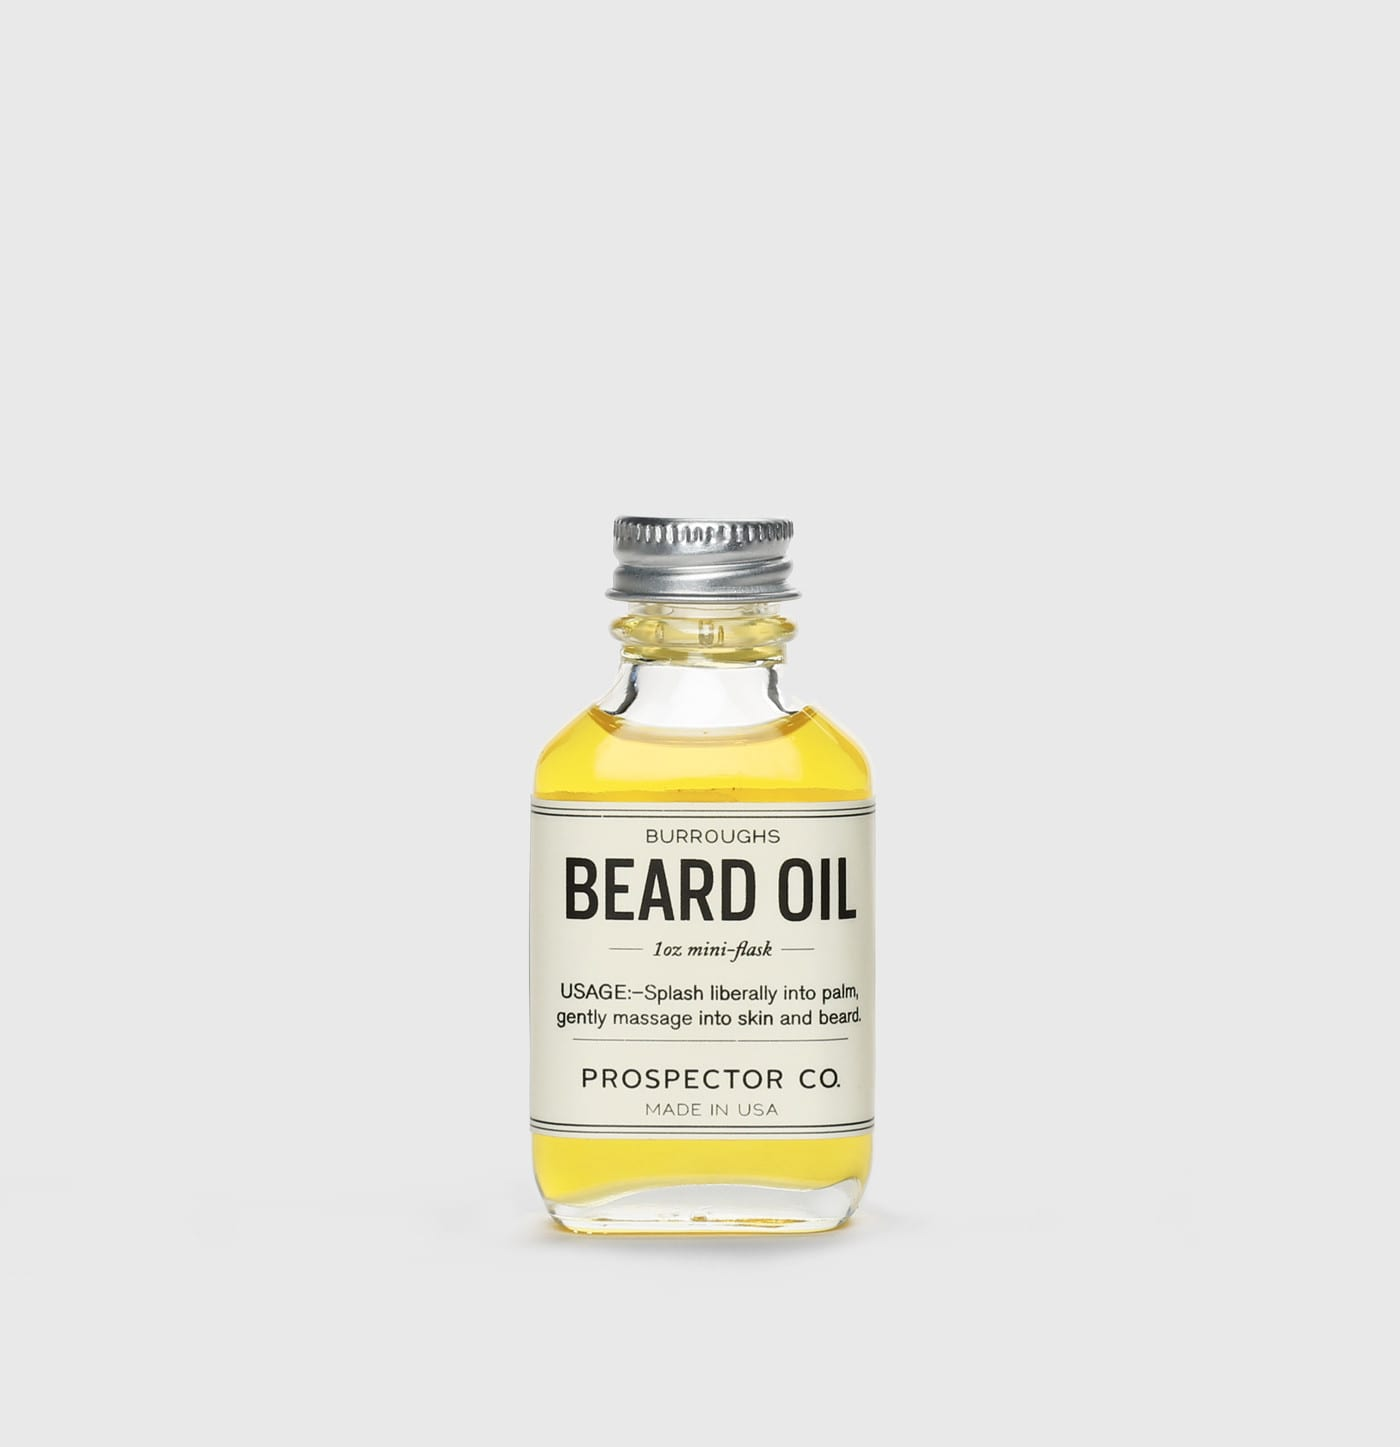 burroughts-beard-oil